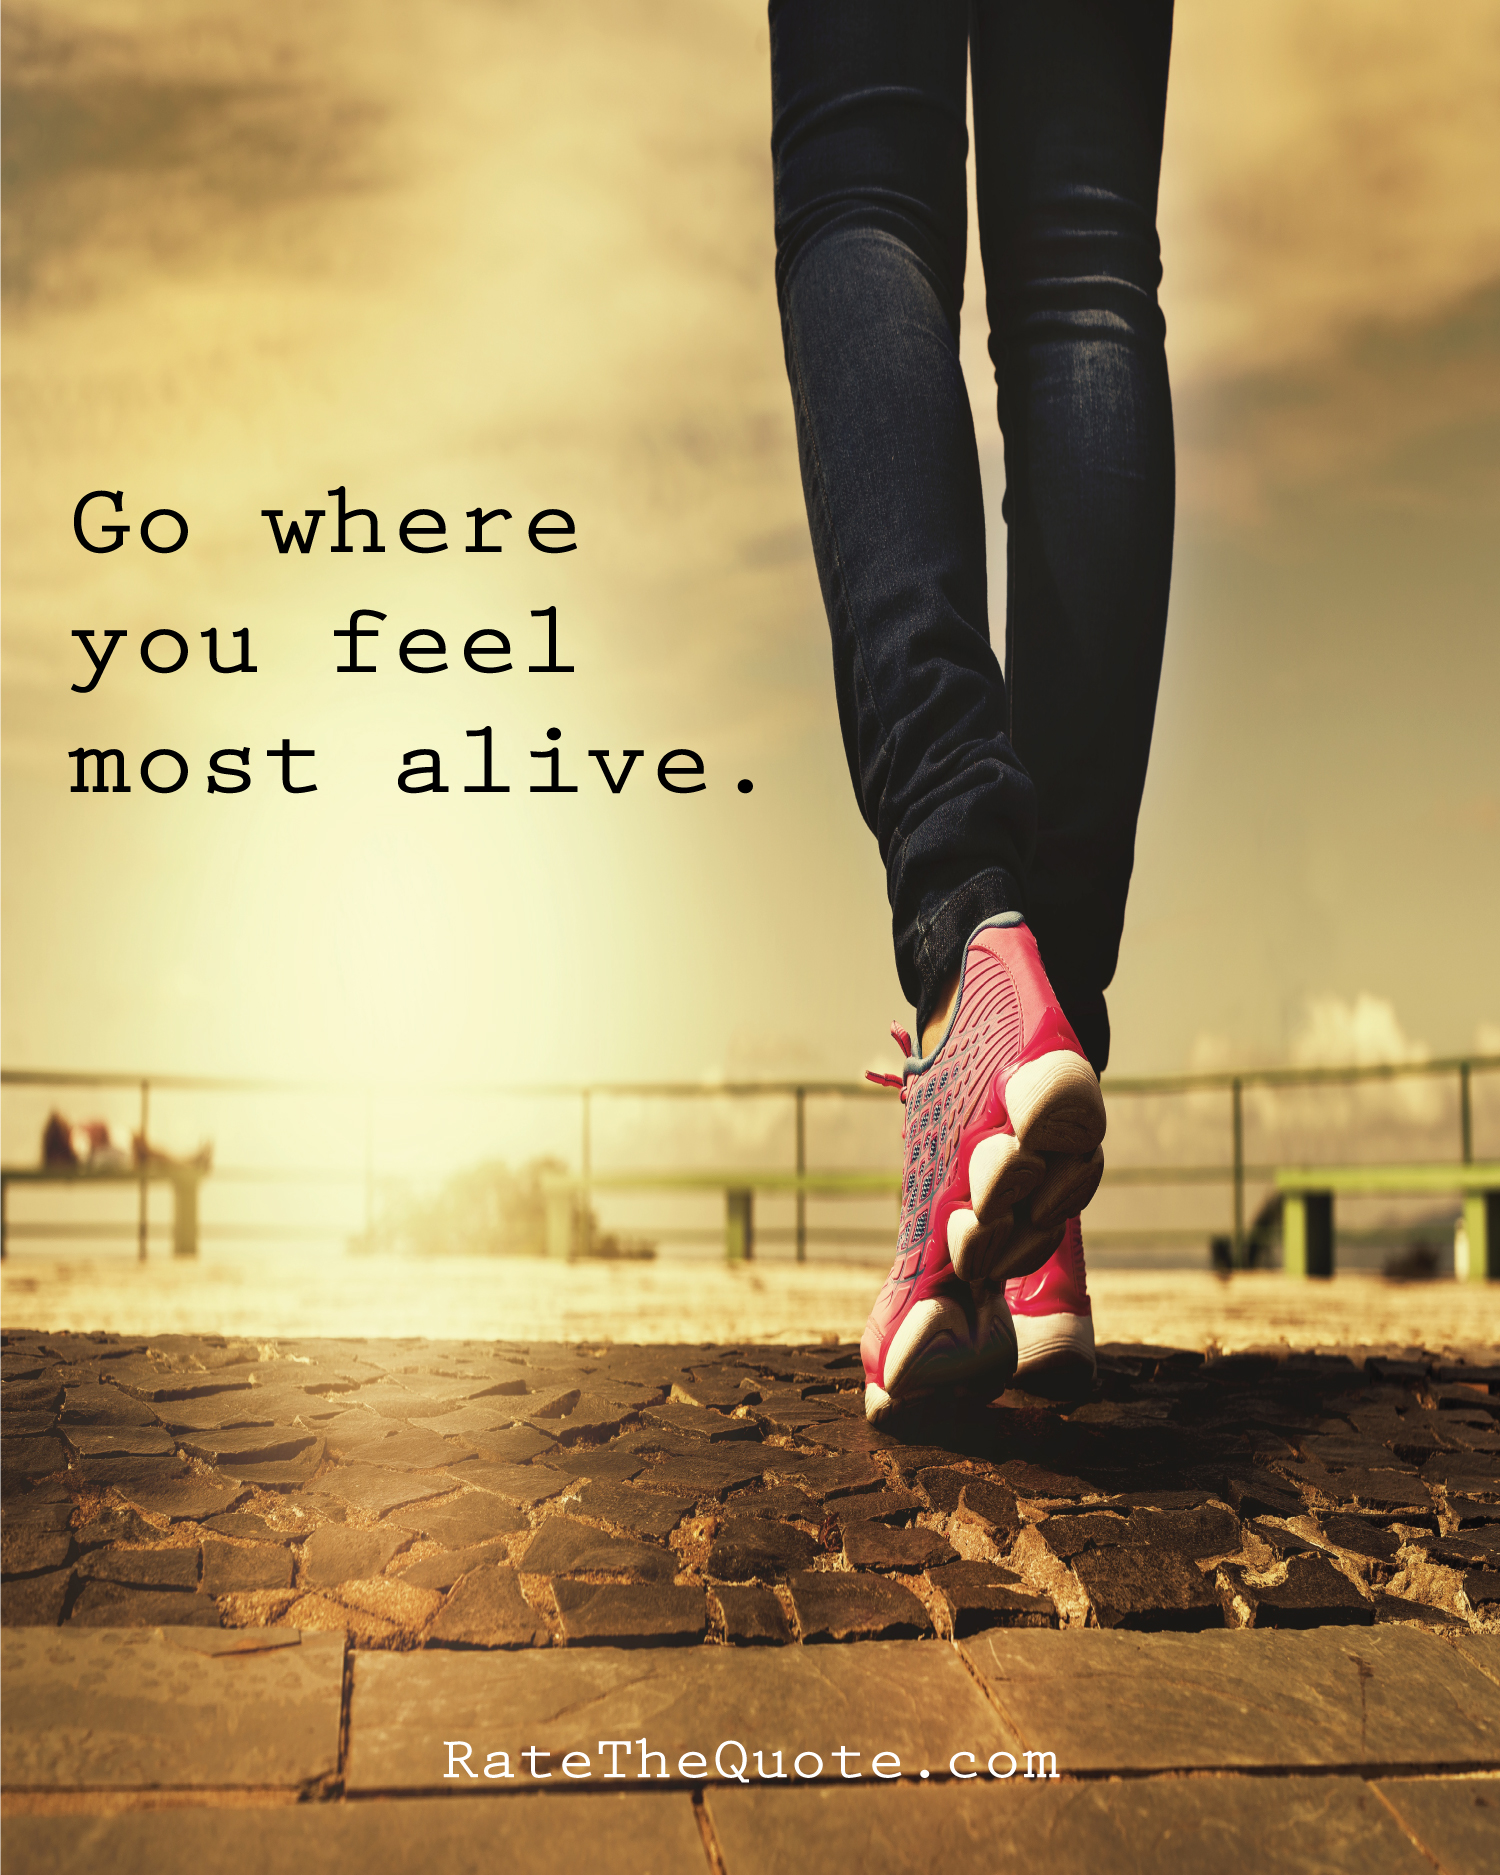 Go where you feel most alive.